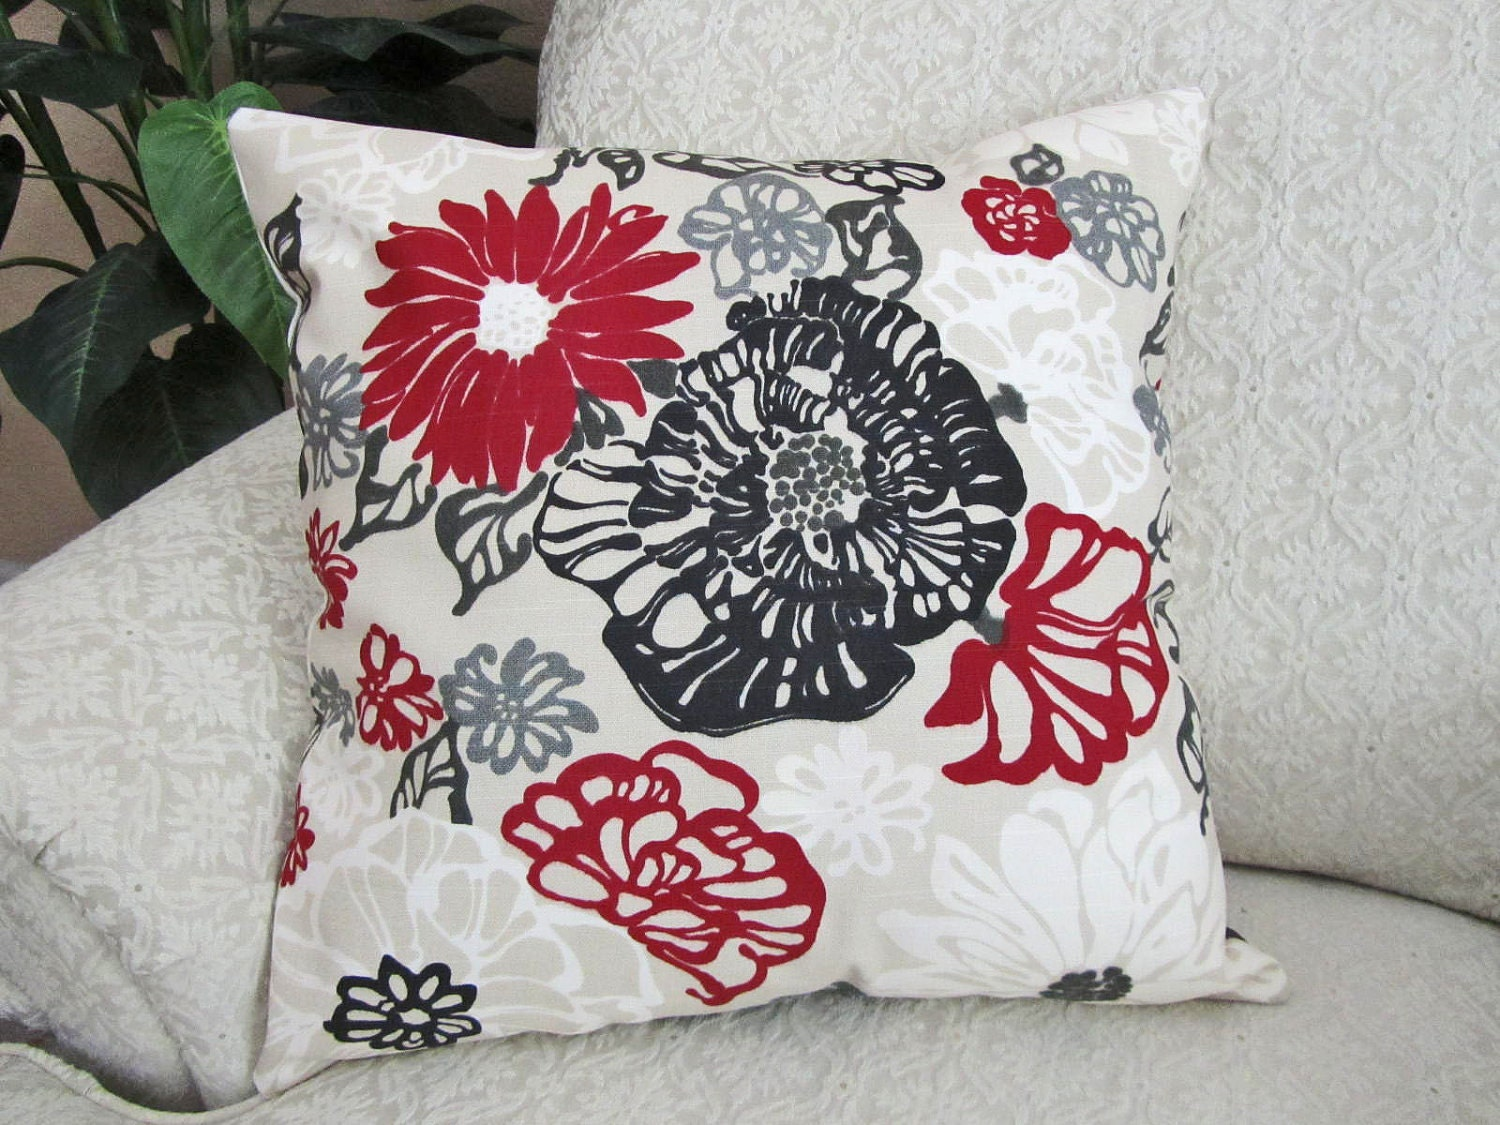 Decorative Pillows Red And Black : Throw Pillow Cover Decorative Red Black Gray by asmushomeinteriors